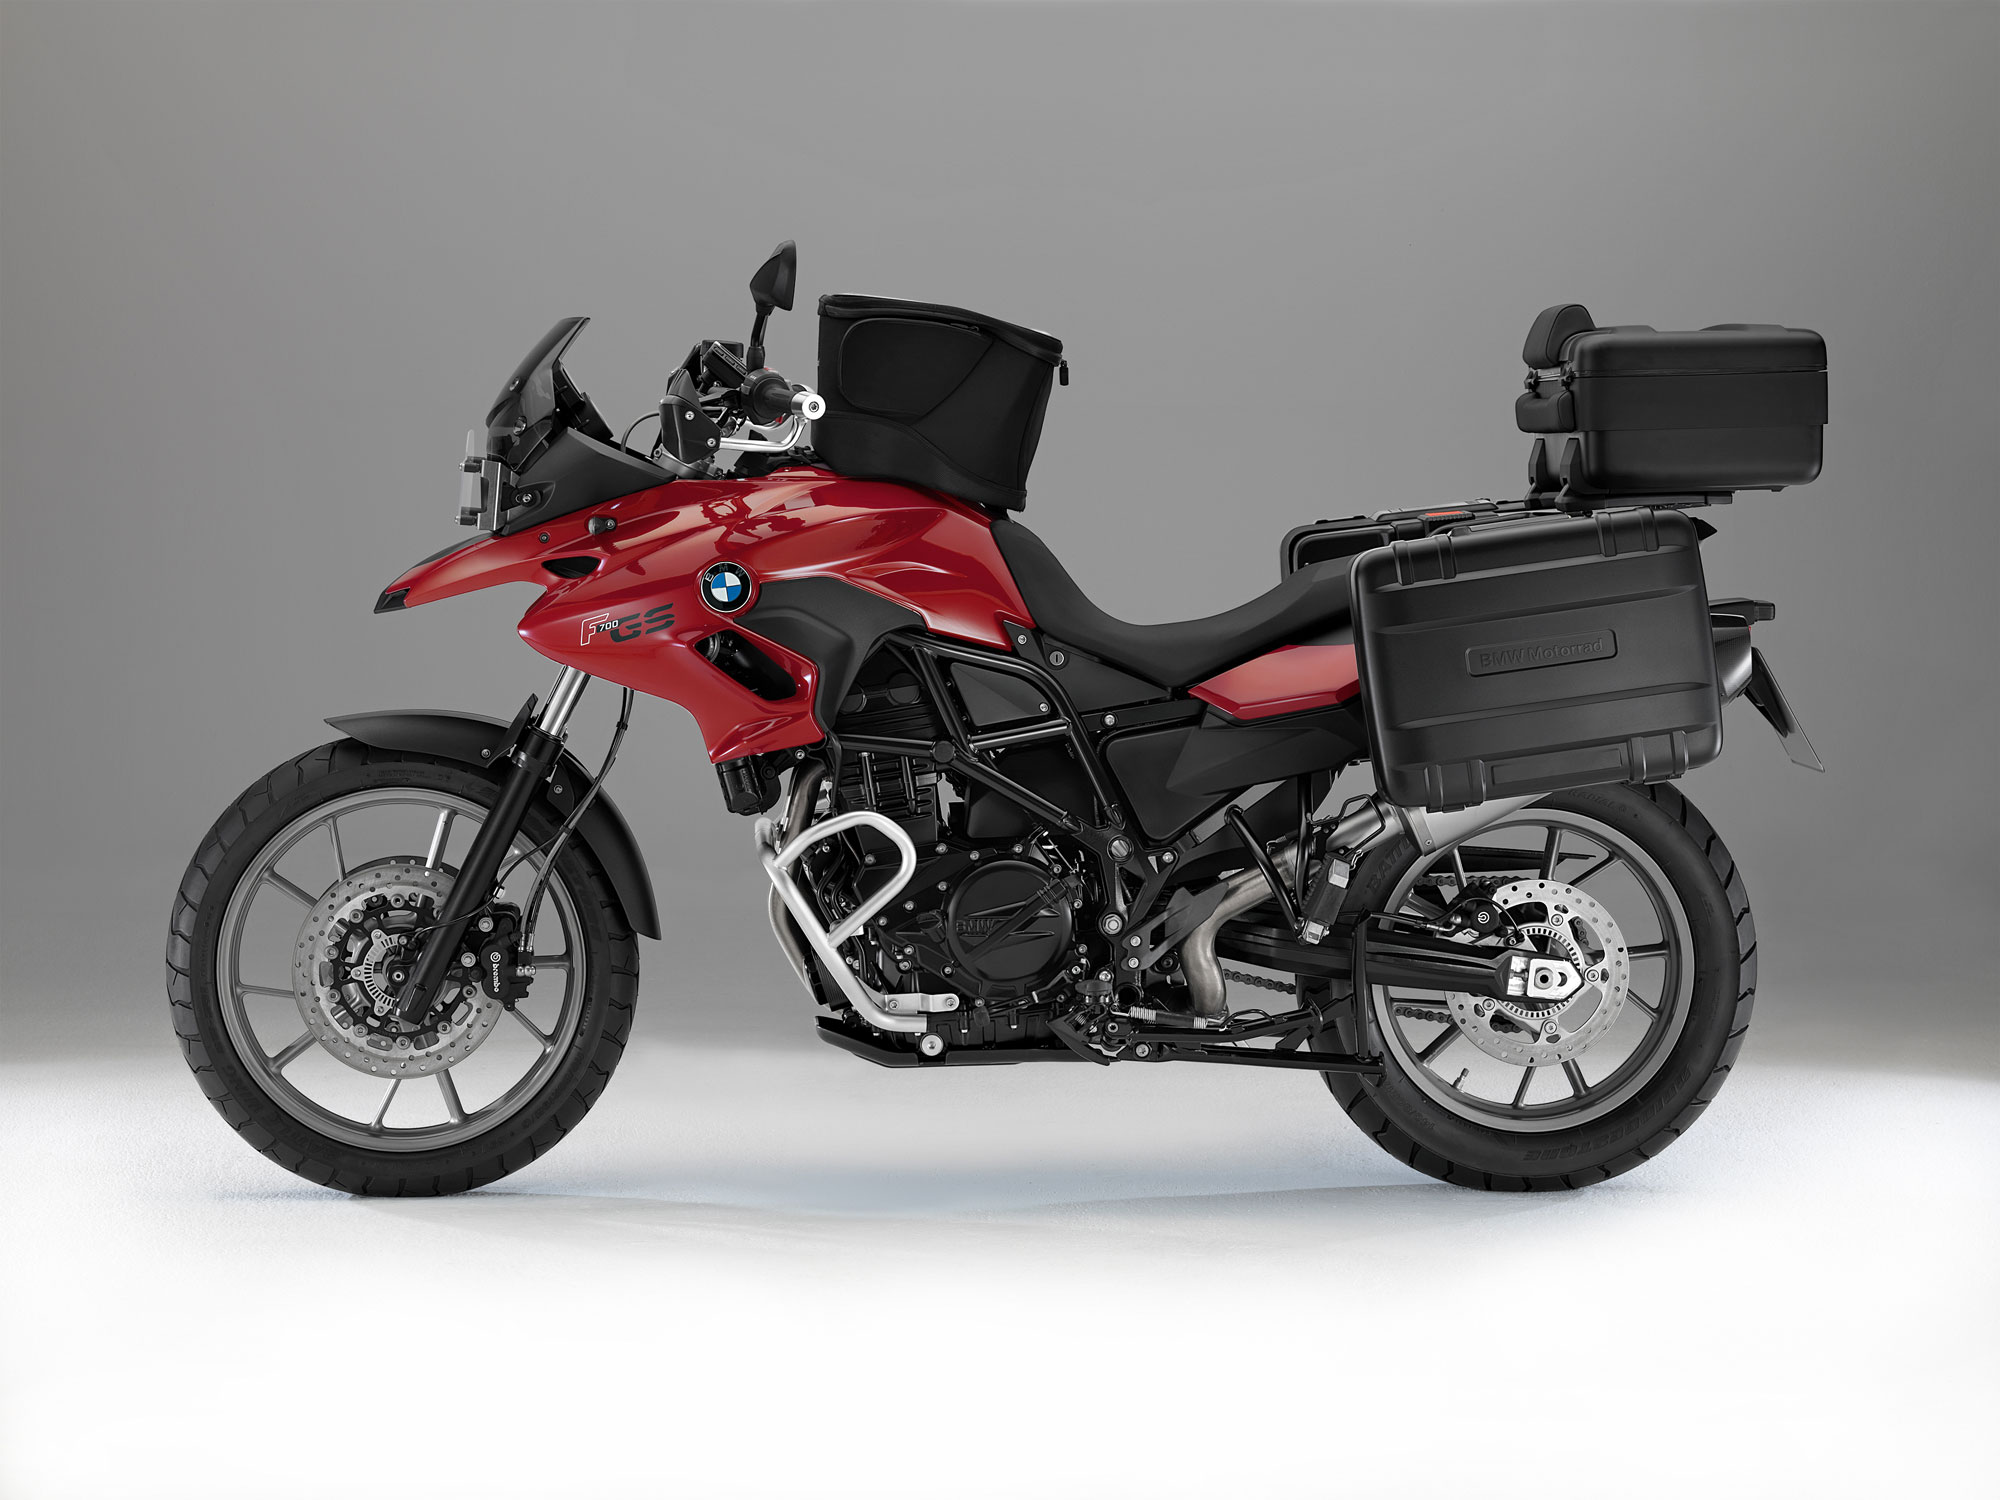 bmw f 700 gs specs - 2012, 2013 - autoevolution